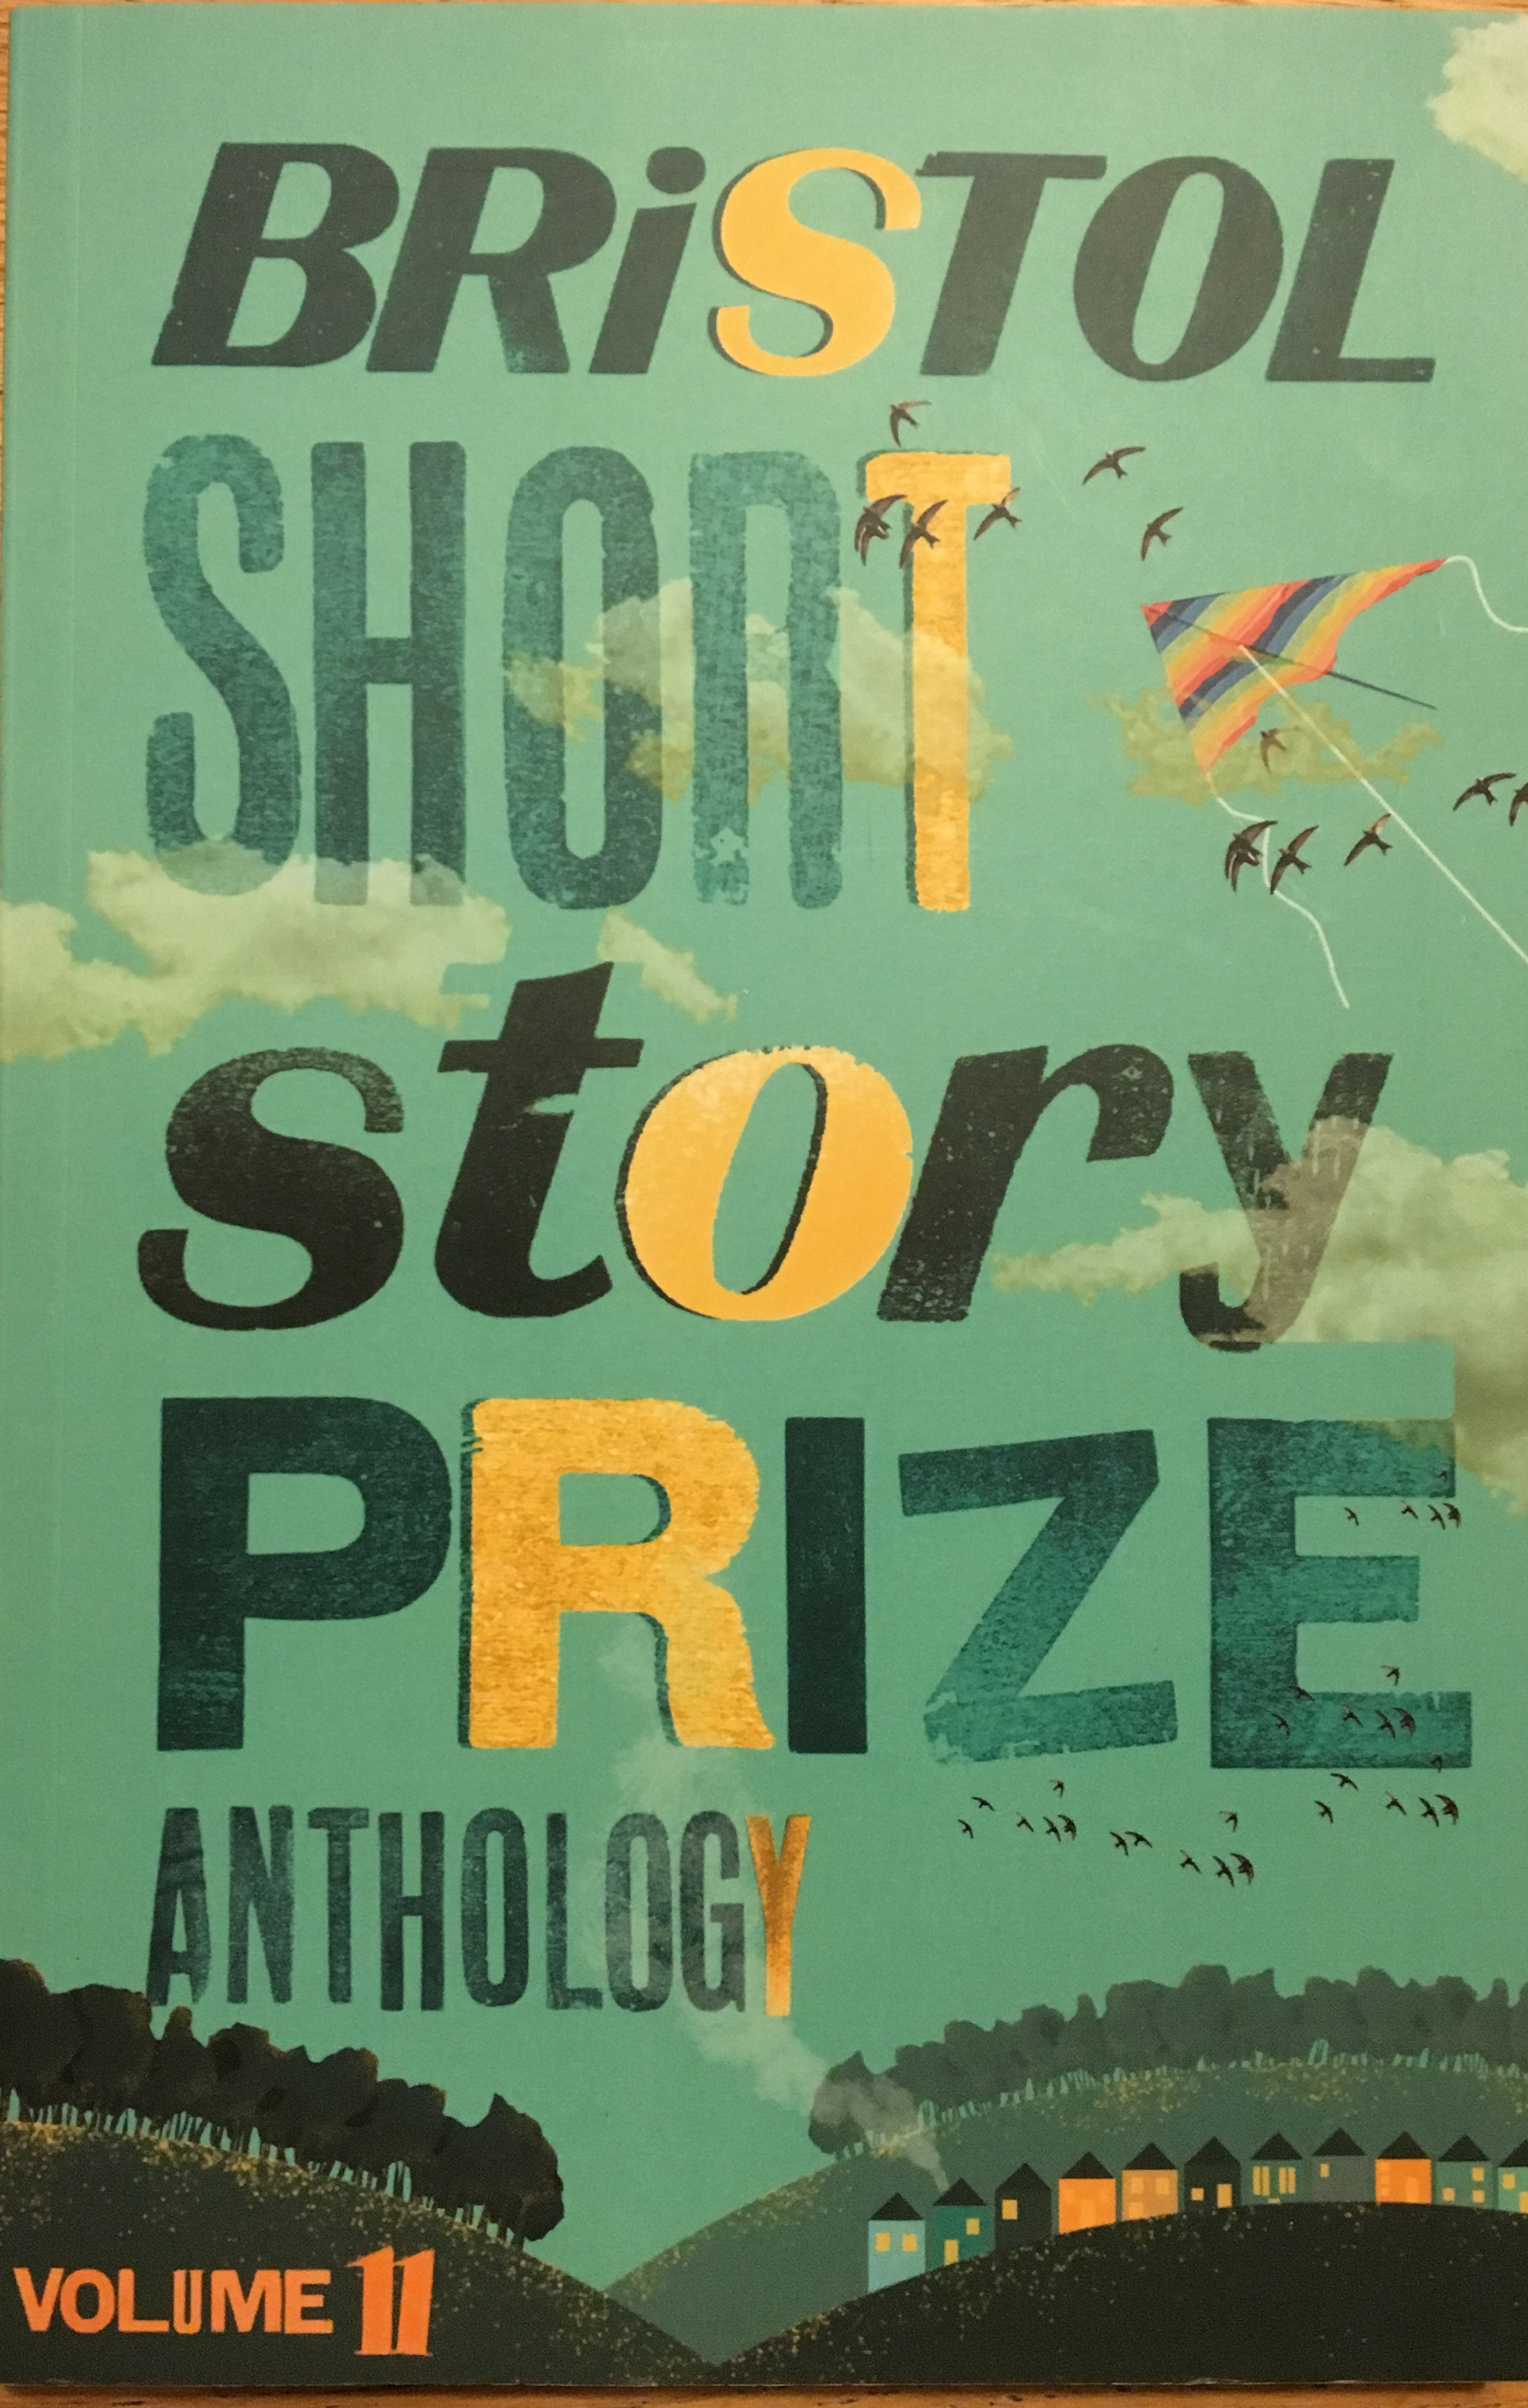 The short story,  The Significance of Swans , was shortlisted in the Bristol Prize and was published in the anthology of winning stories.